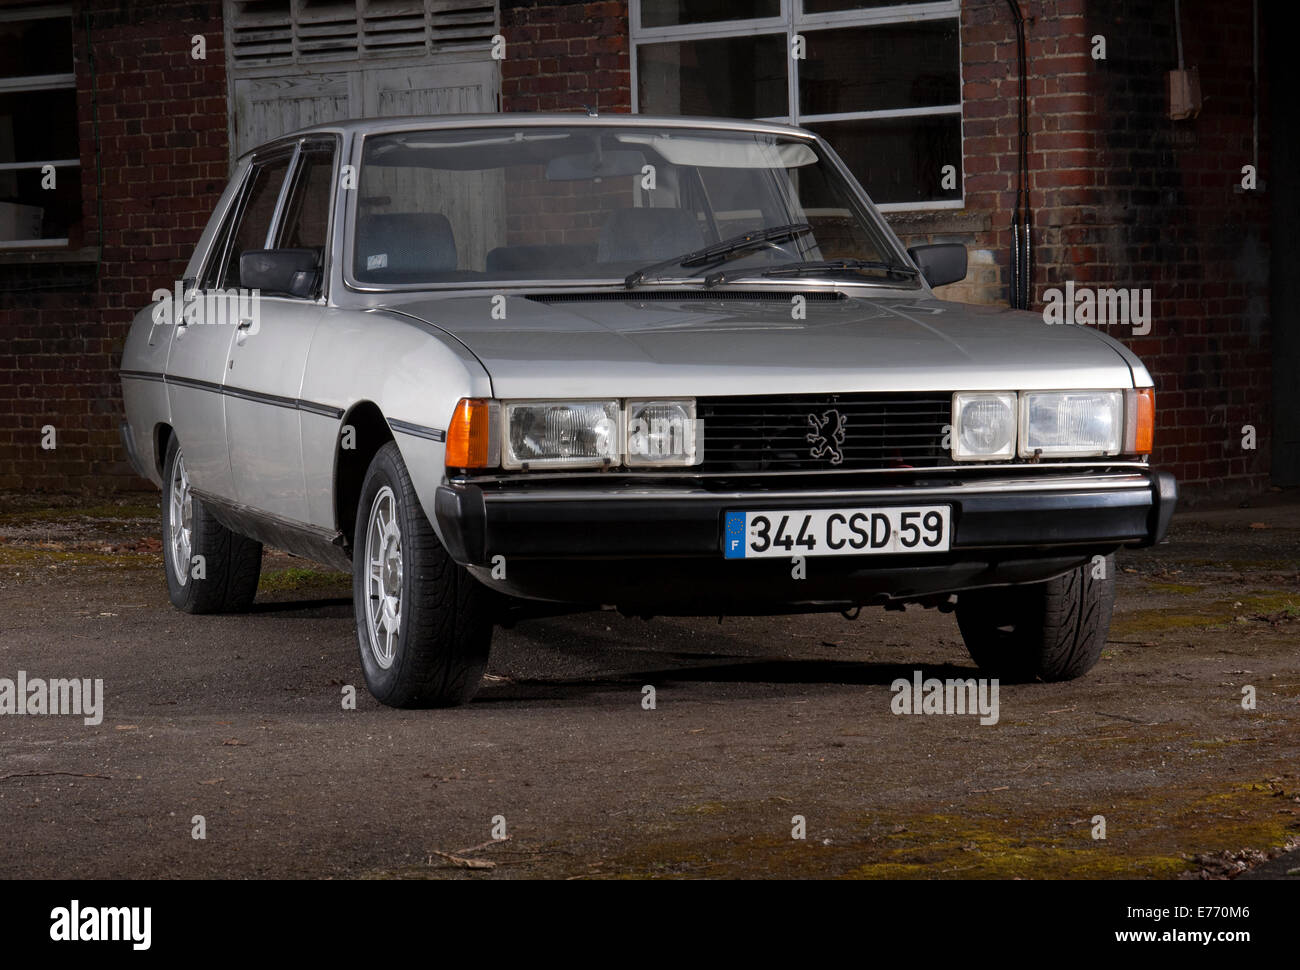 peugeot 604 french classic car early 80s model stock photo royalty free image 73298294 alamy. Black Bedroom Furniture Sets. Home Design Ideas